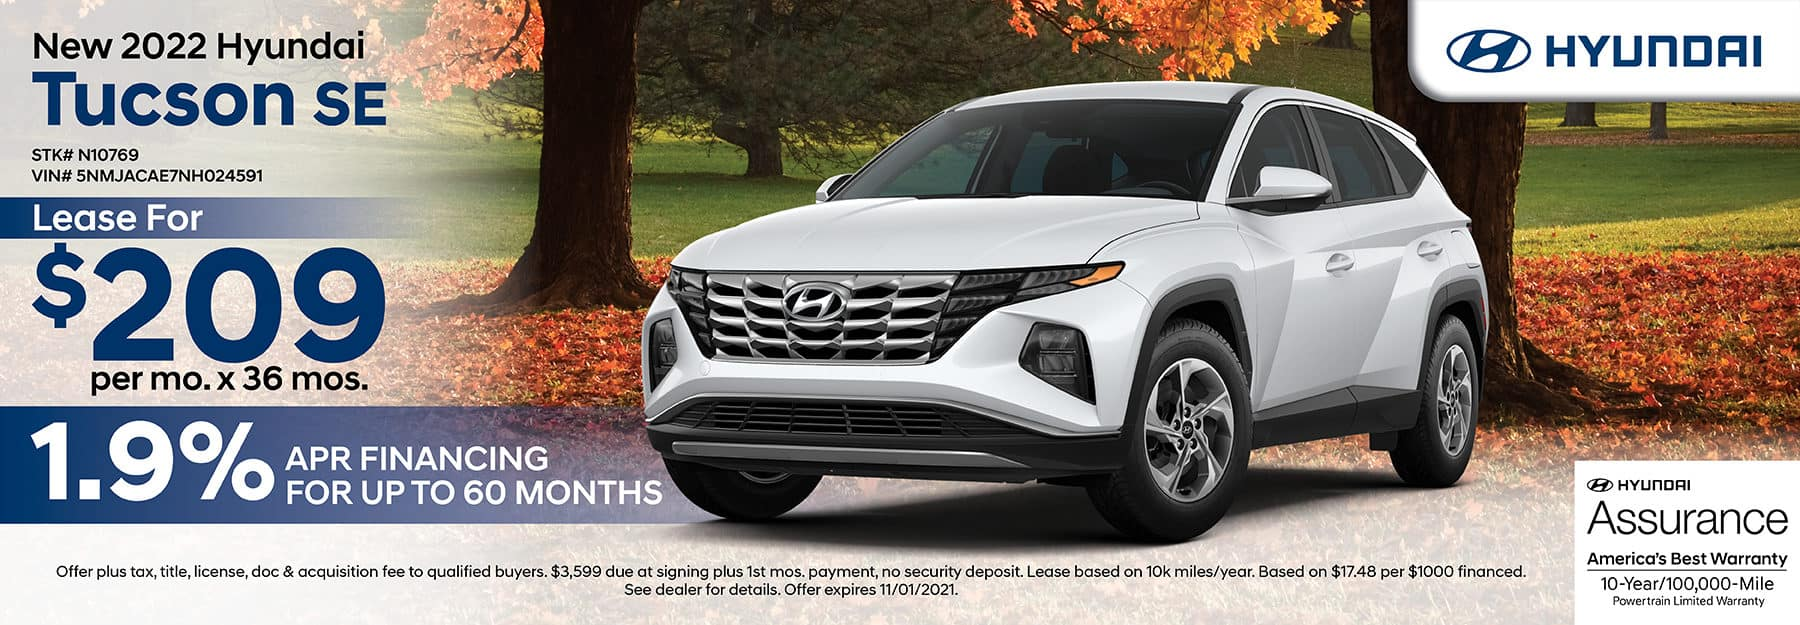 2022 Hyundai Tucson SE lease for $209 per month for 36 months with 1.9% APR financing for up to 60 months.